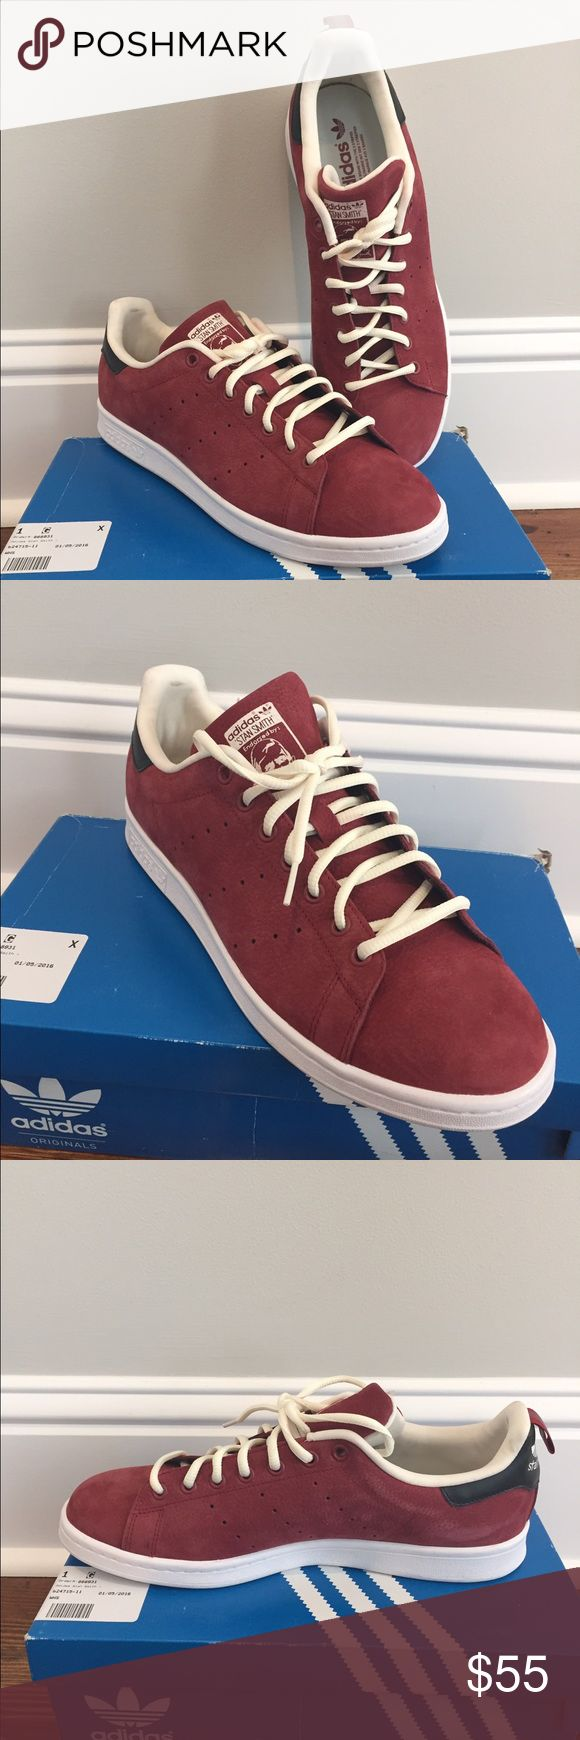 Adidas Stan Smith Sneakers Like new Adidas Stan Smith Sneakers. Worn once. Ships with box. adidas Shoes Sneakers